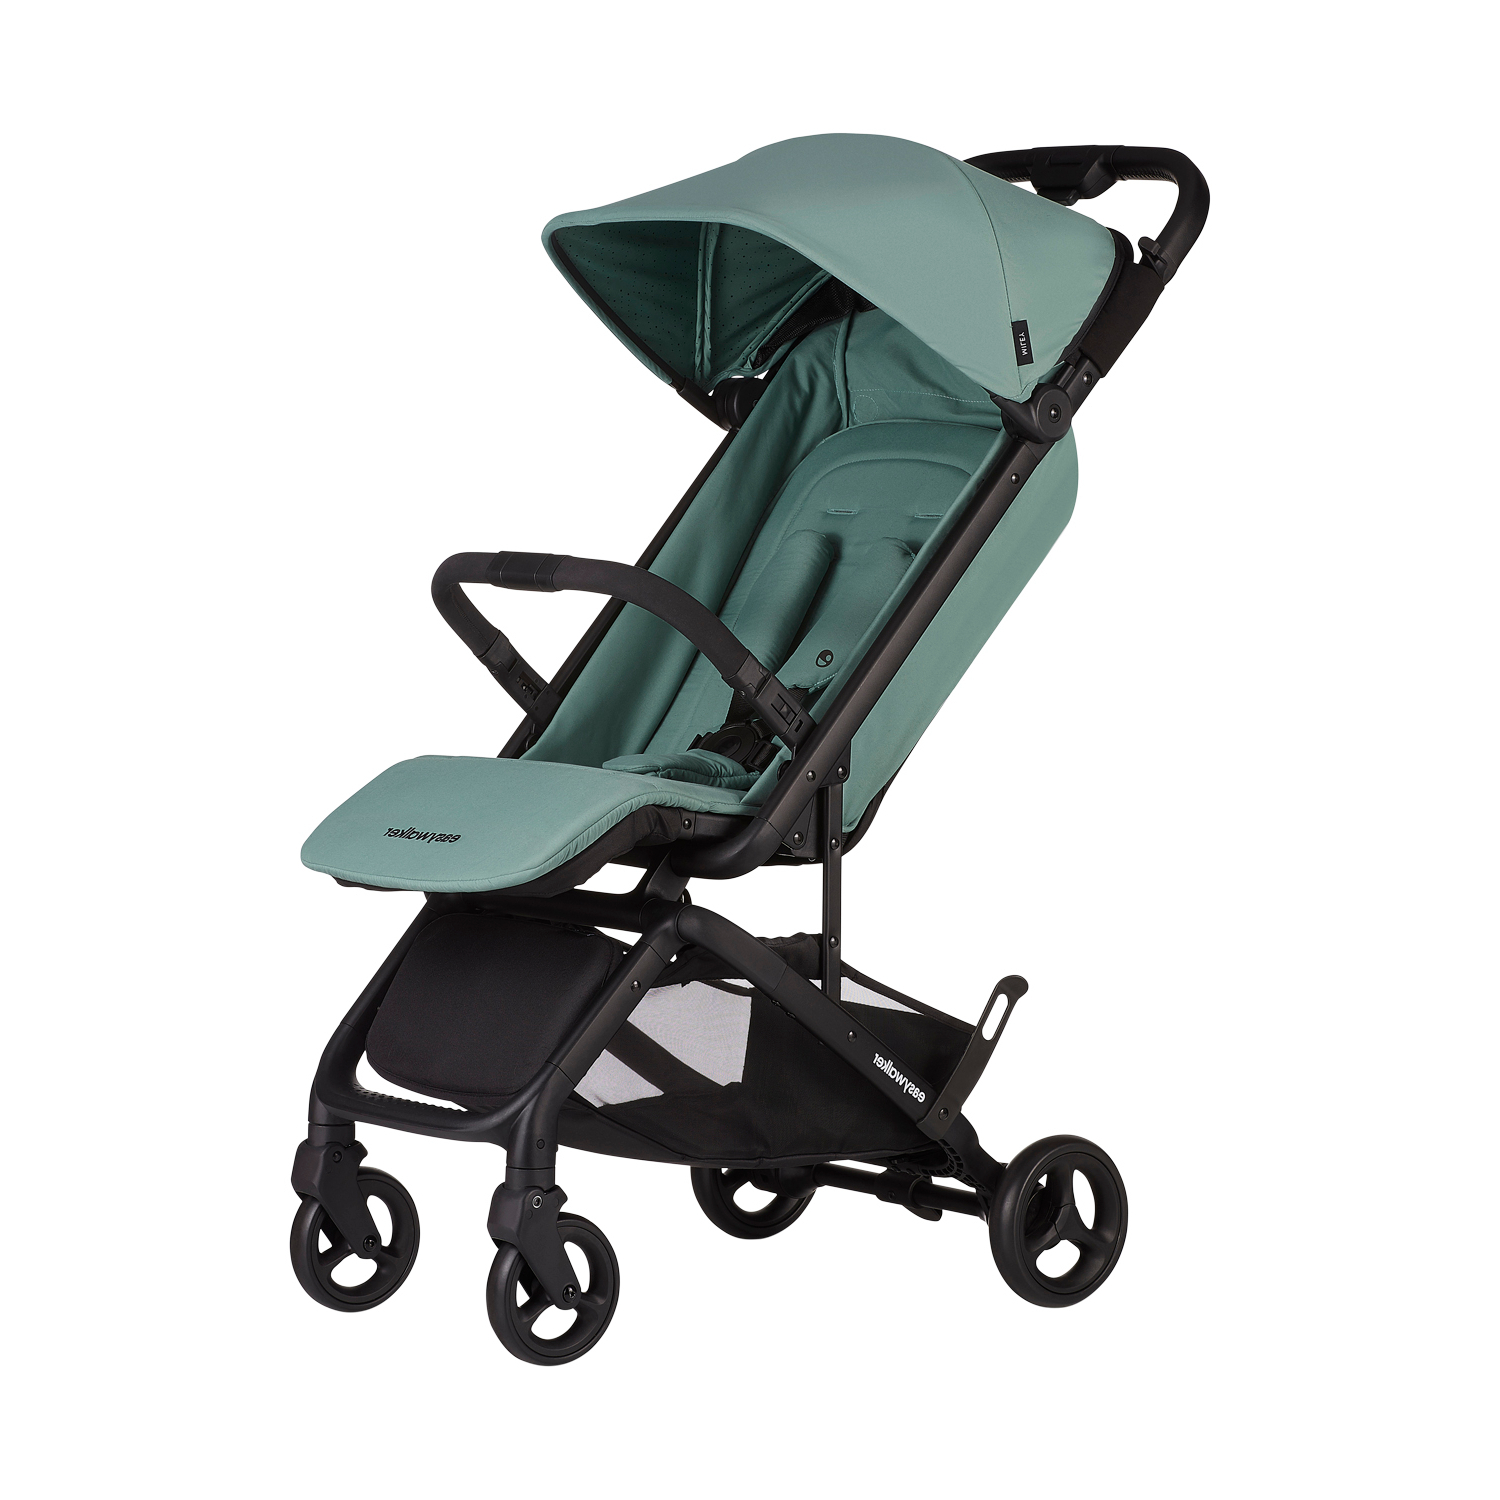 Easywalker Miley Buggy Coral Green